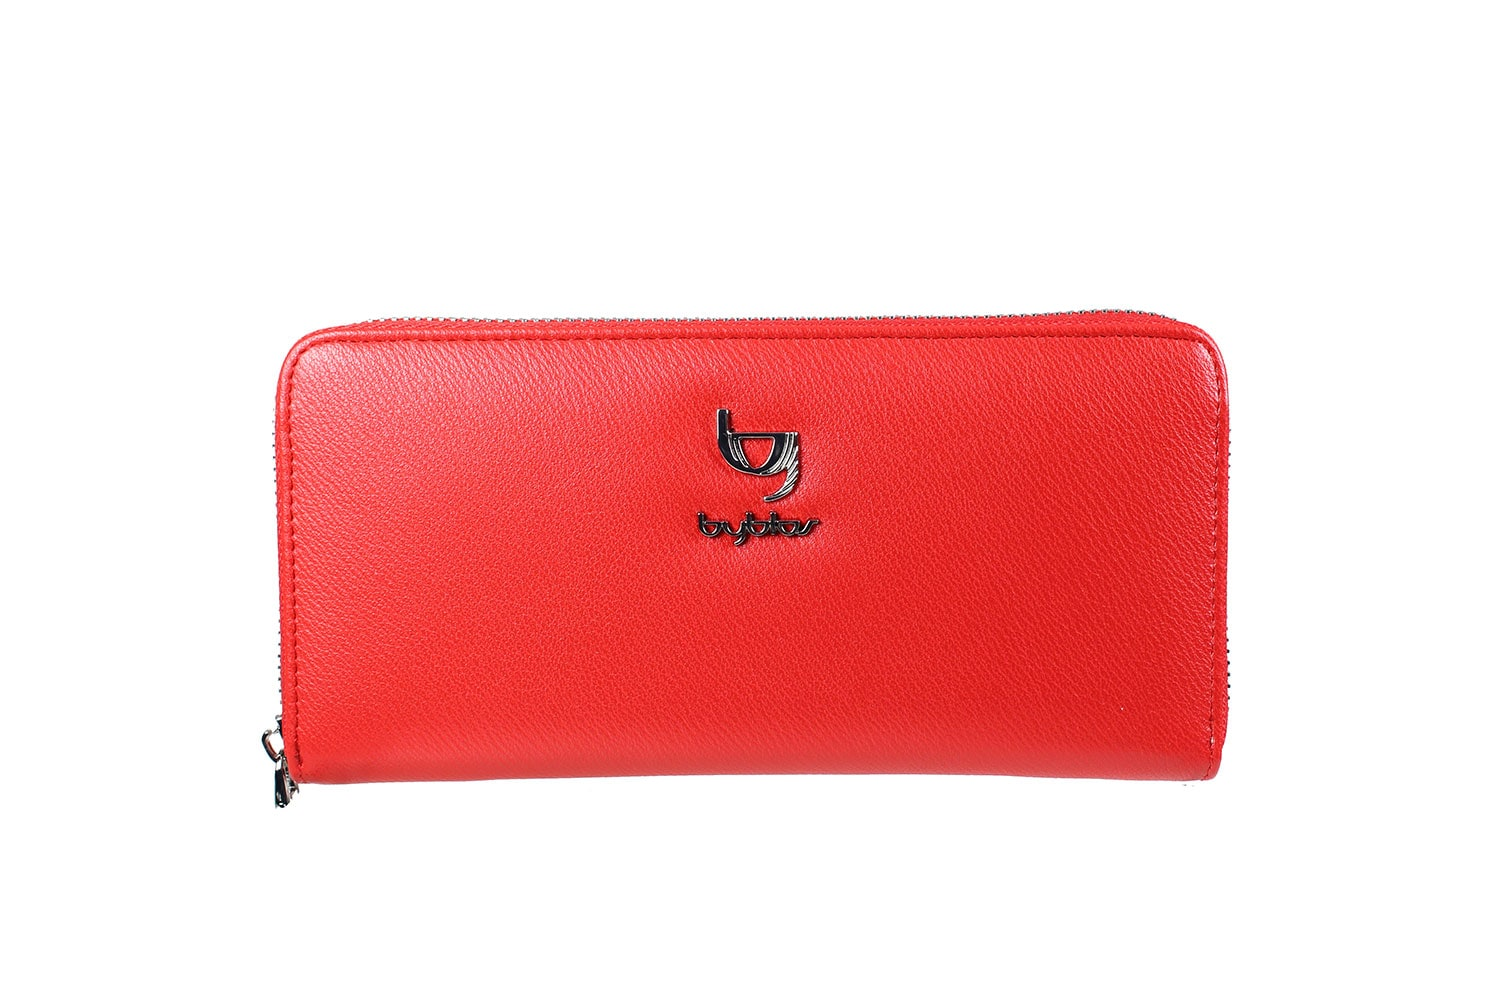 3855681958 BYBLOS Wallet ZIP AROUND 2WW0004 R150